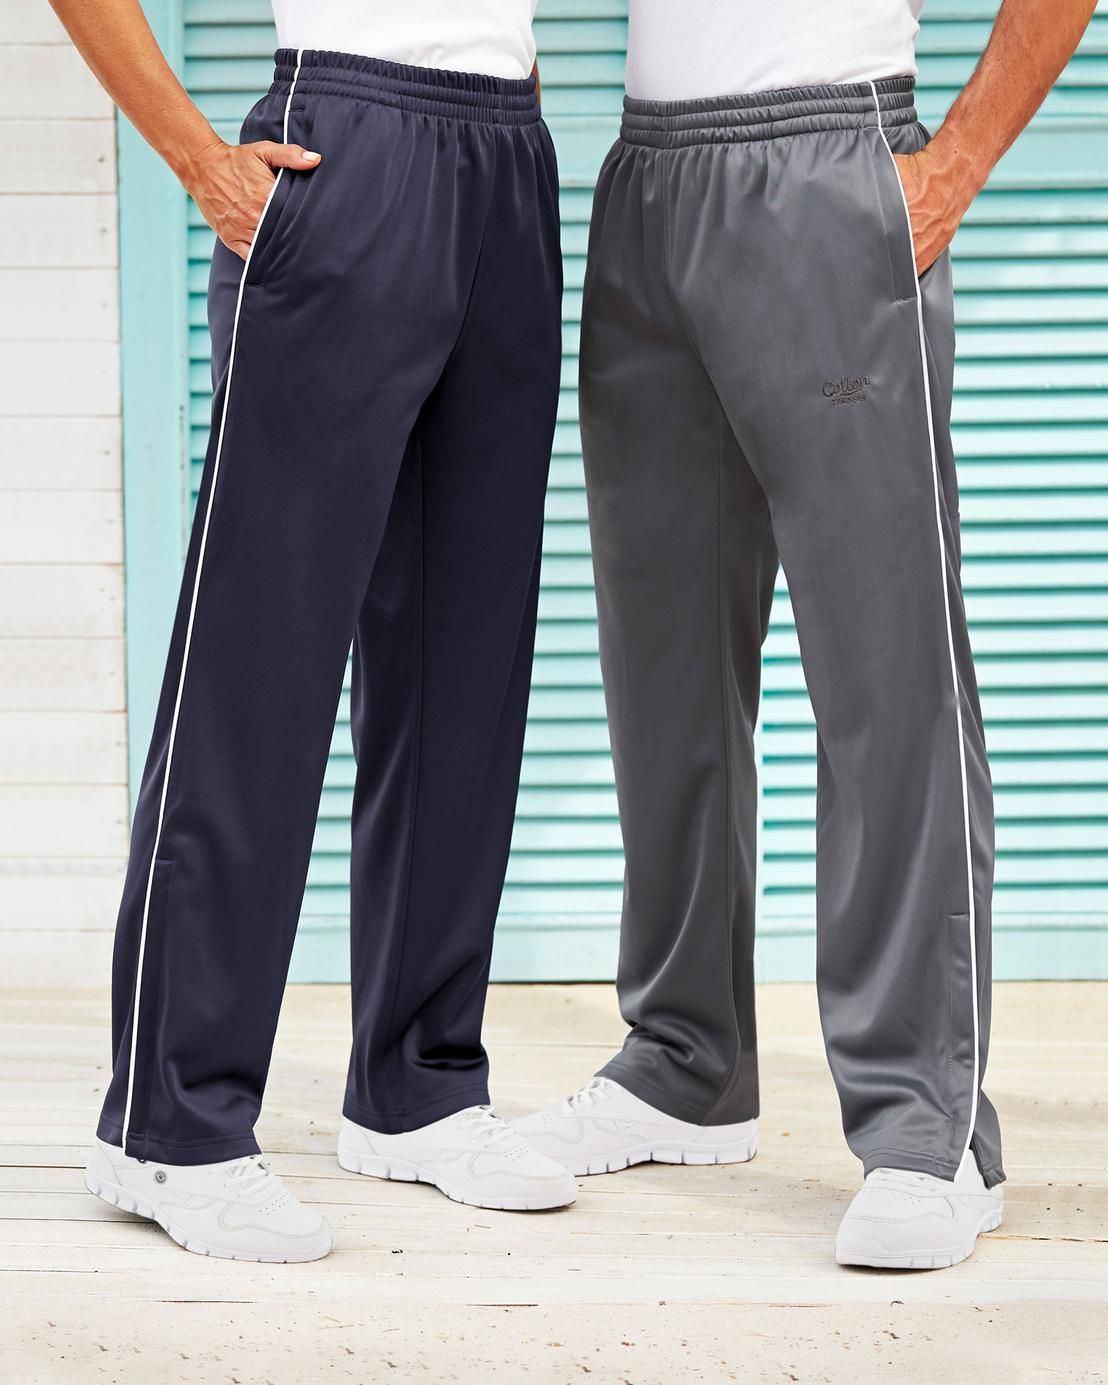 blogger.com: Cotton Traders - Trousers / Men: Clothing